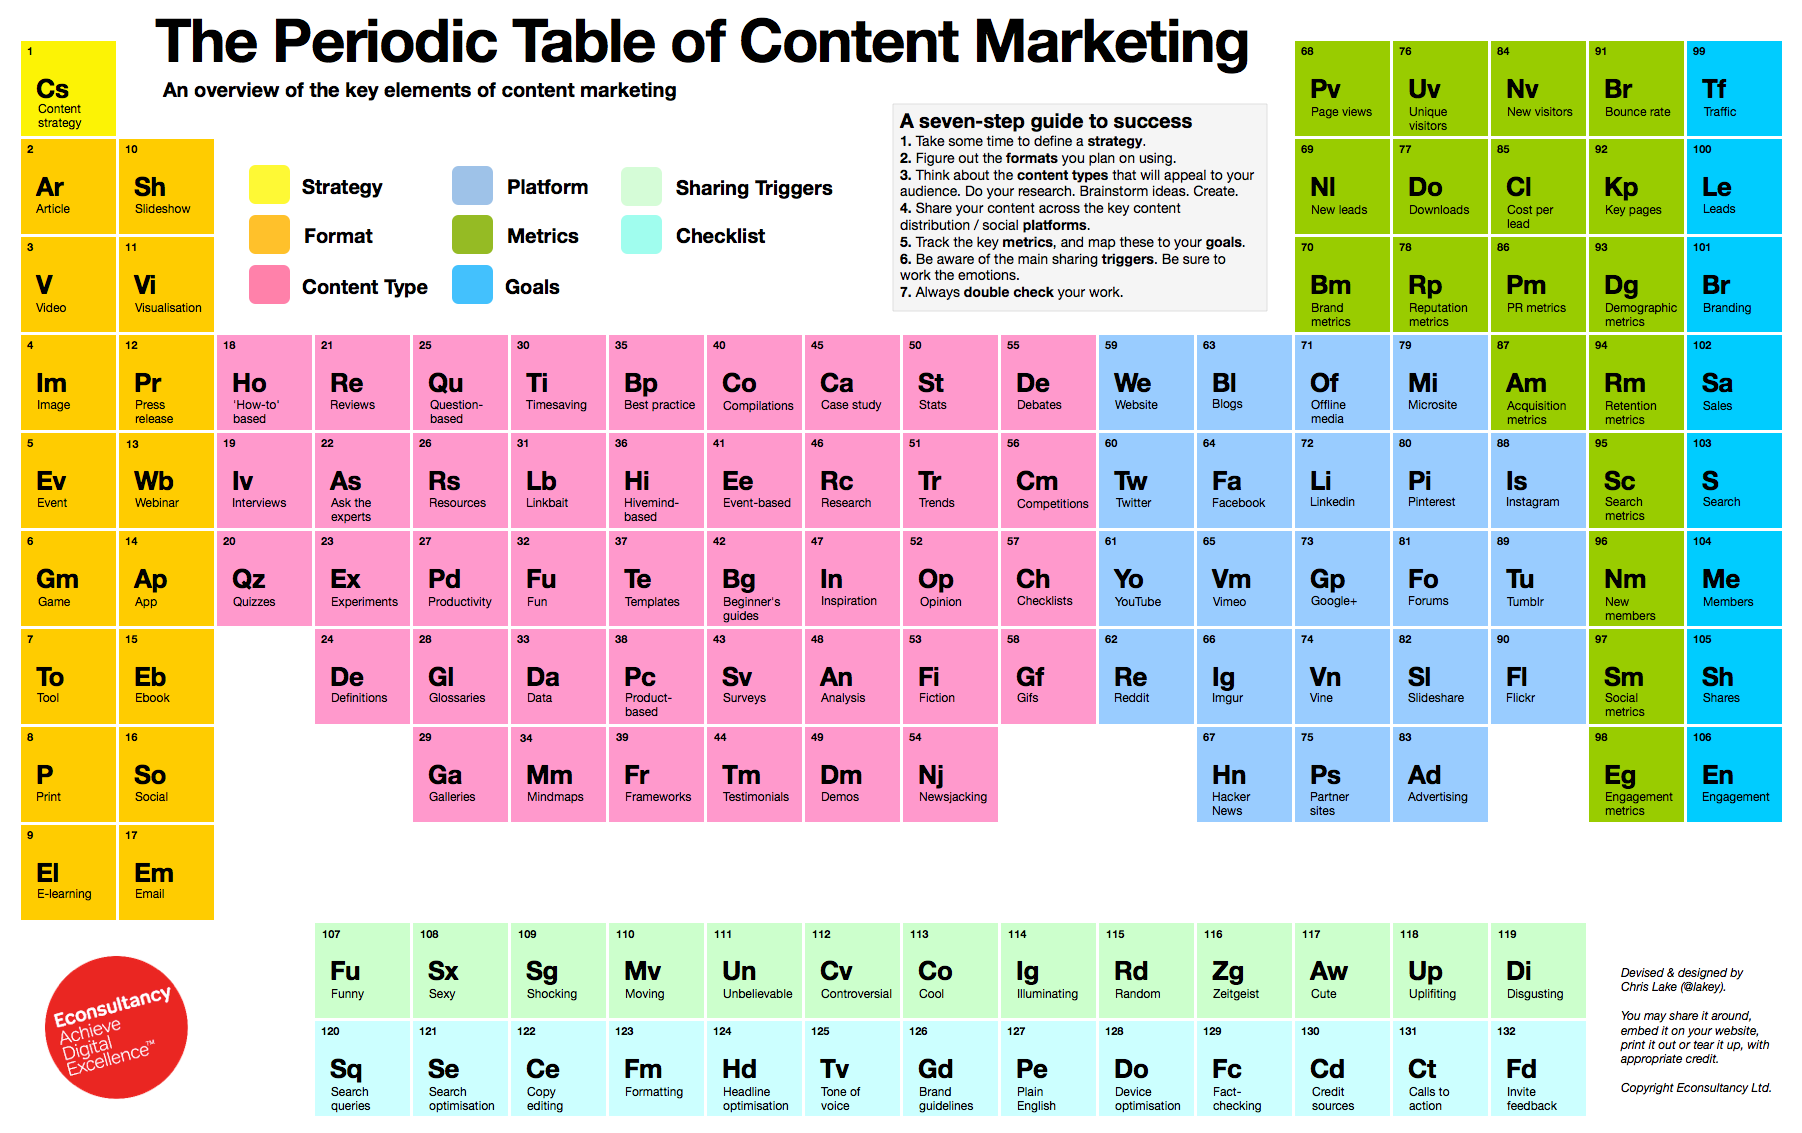 5 ways to generate more leads with content marketing periodic table of content marketing gamestrikefo Choice Image